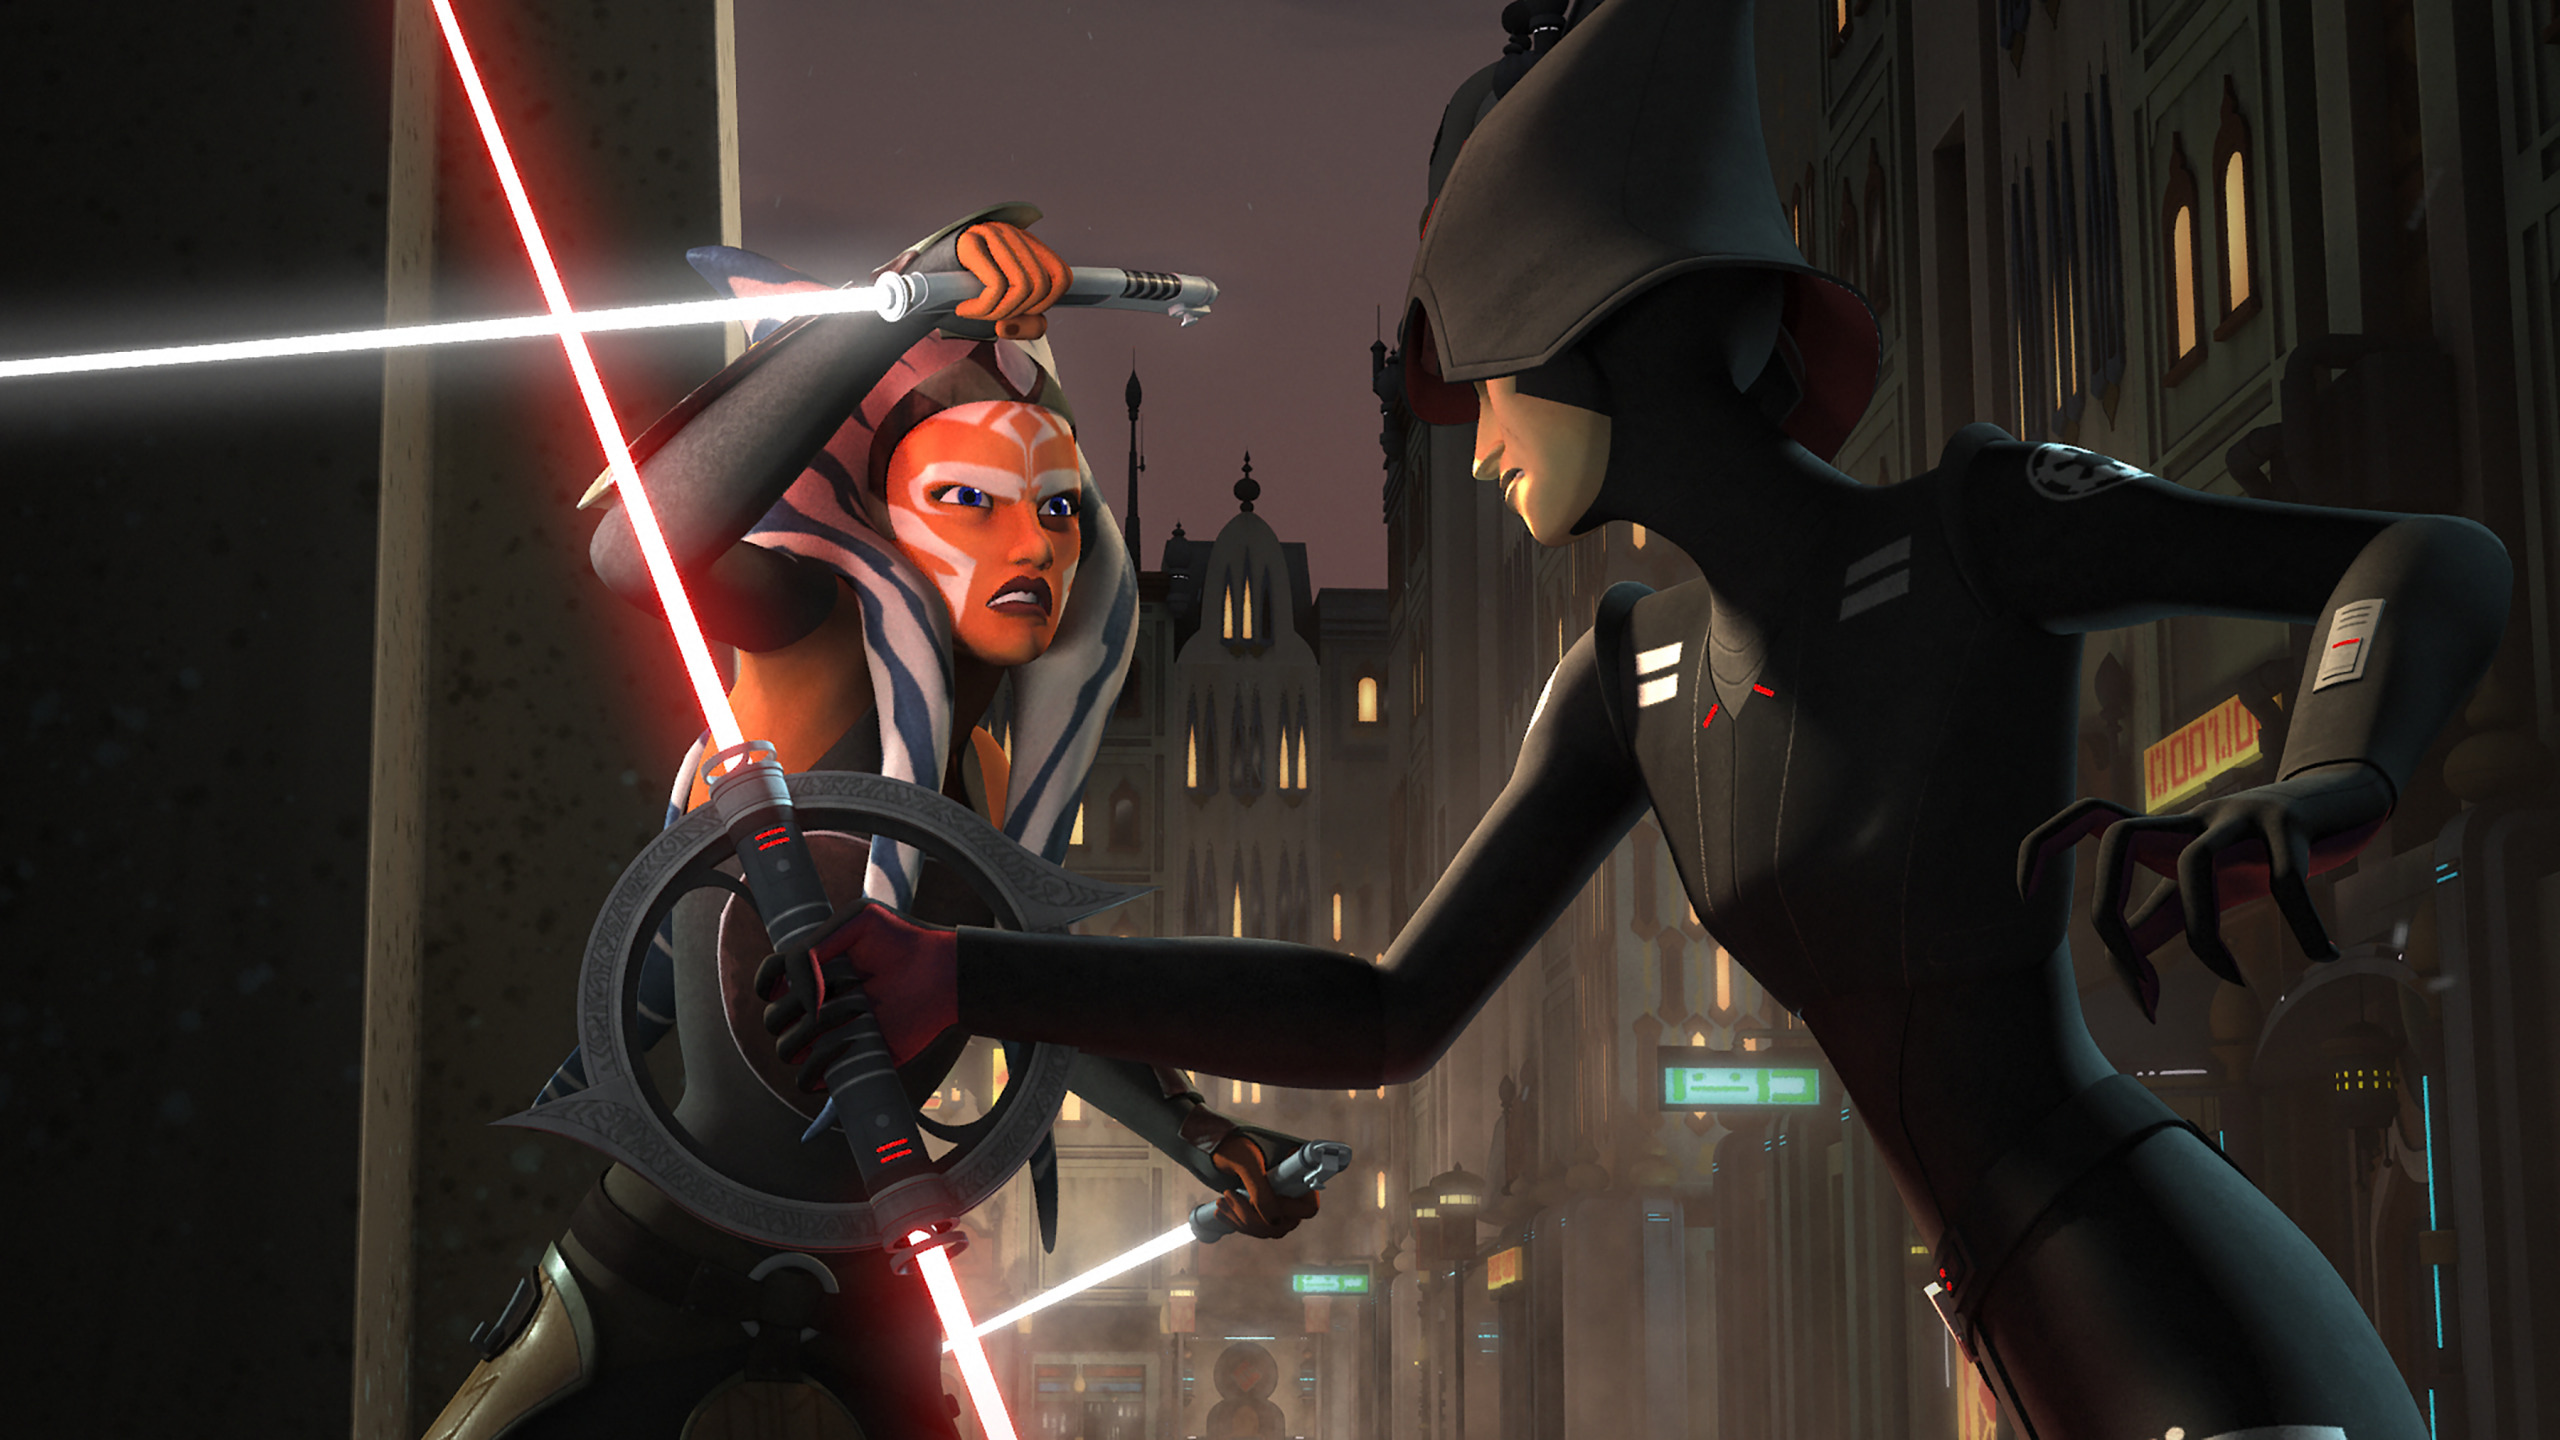 Download Wallpaper Animated Series Star Wars Rebels Star Wars Rebels Ahsoka The Inquisitor 7th Sister Section Films In Resolution 2560x1440